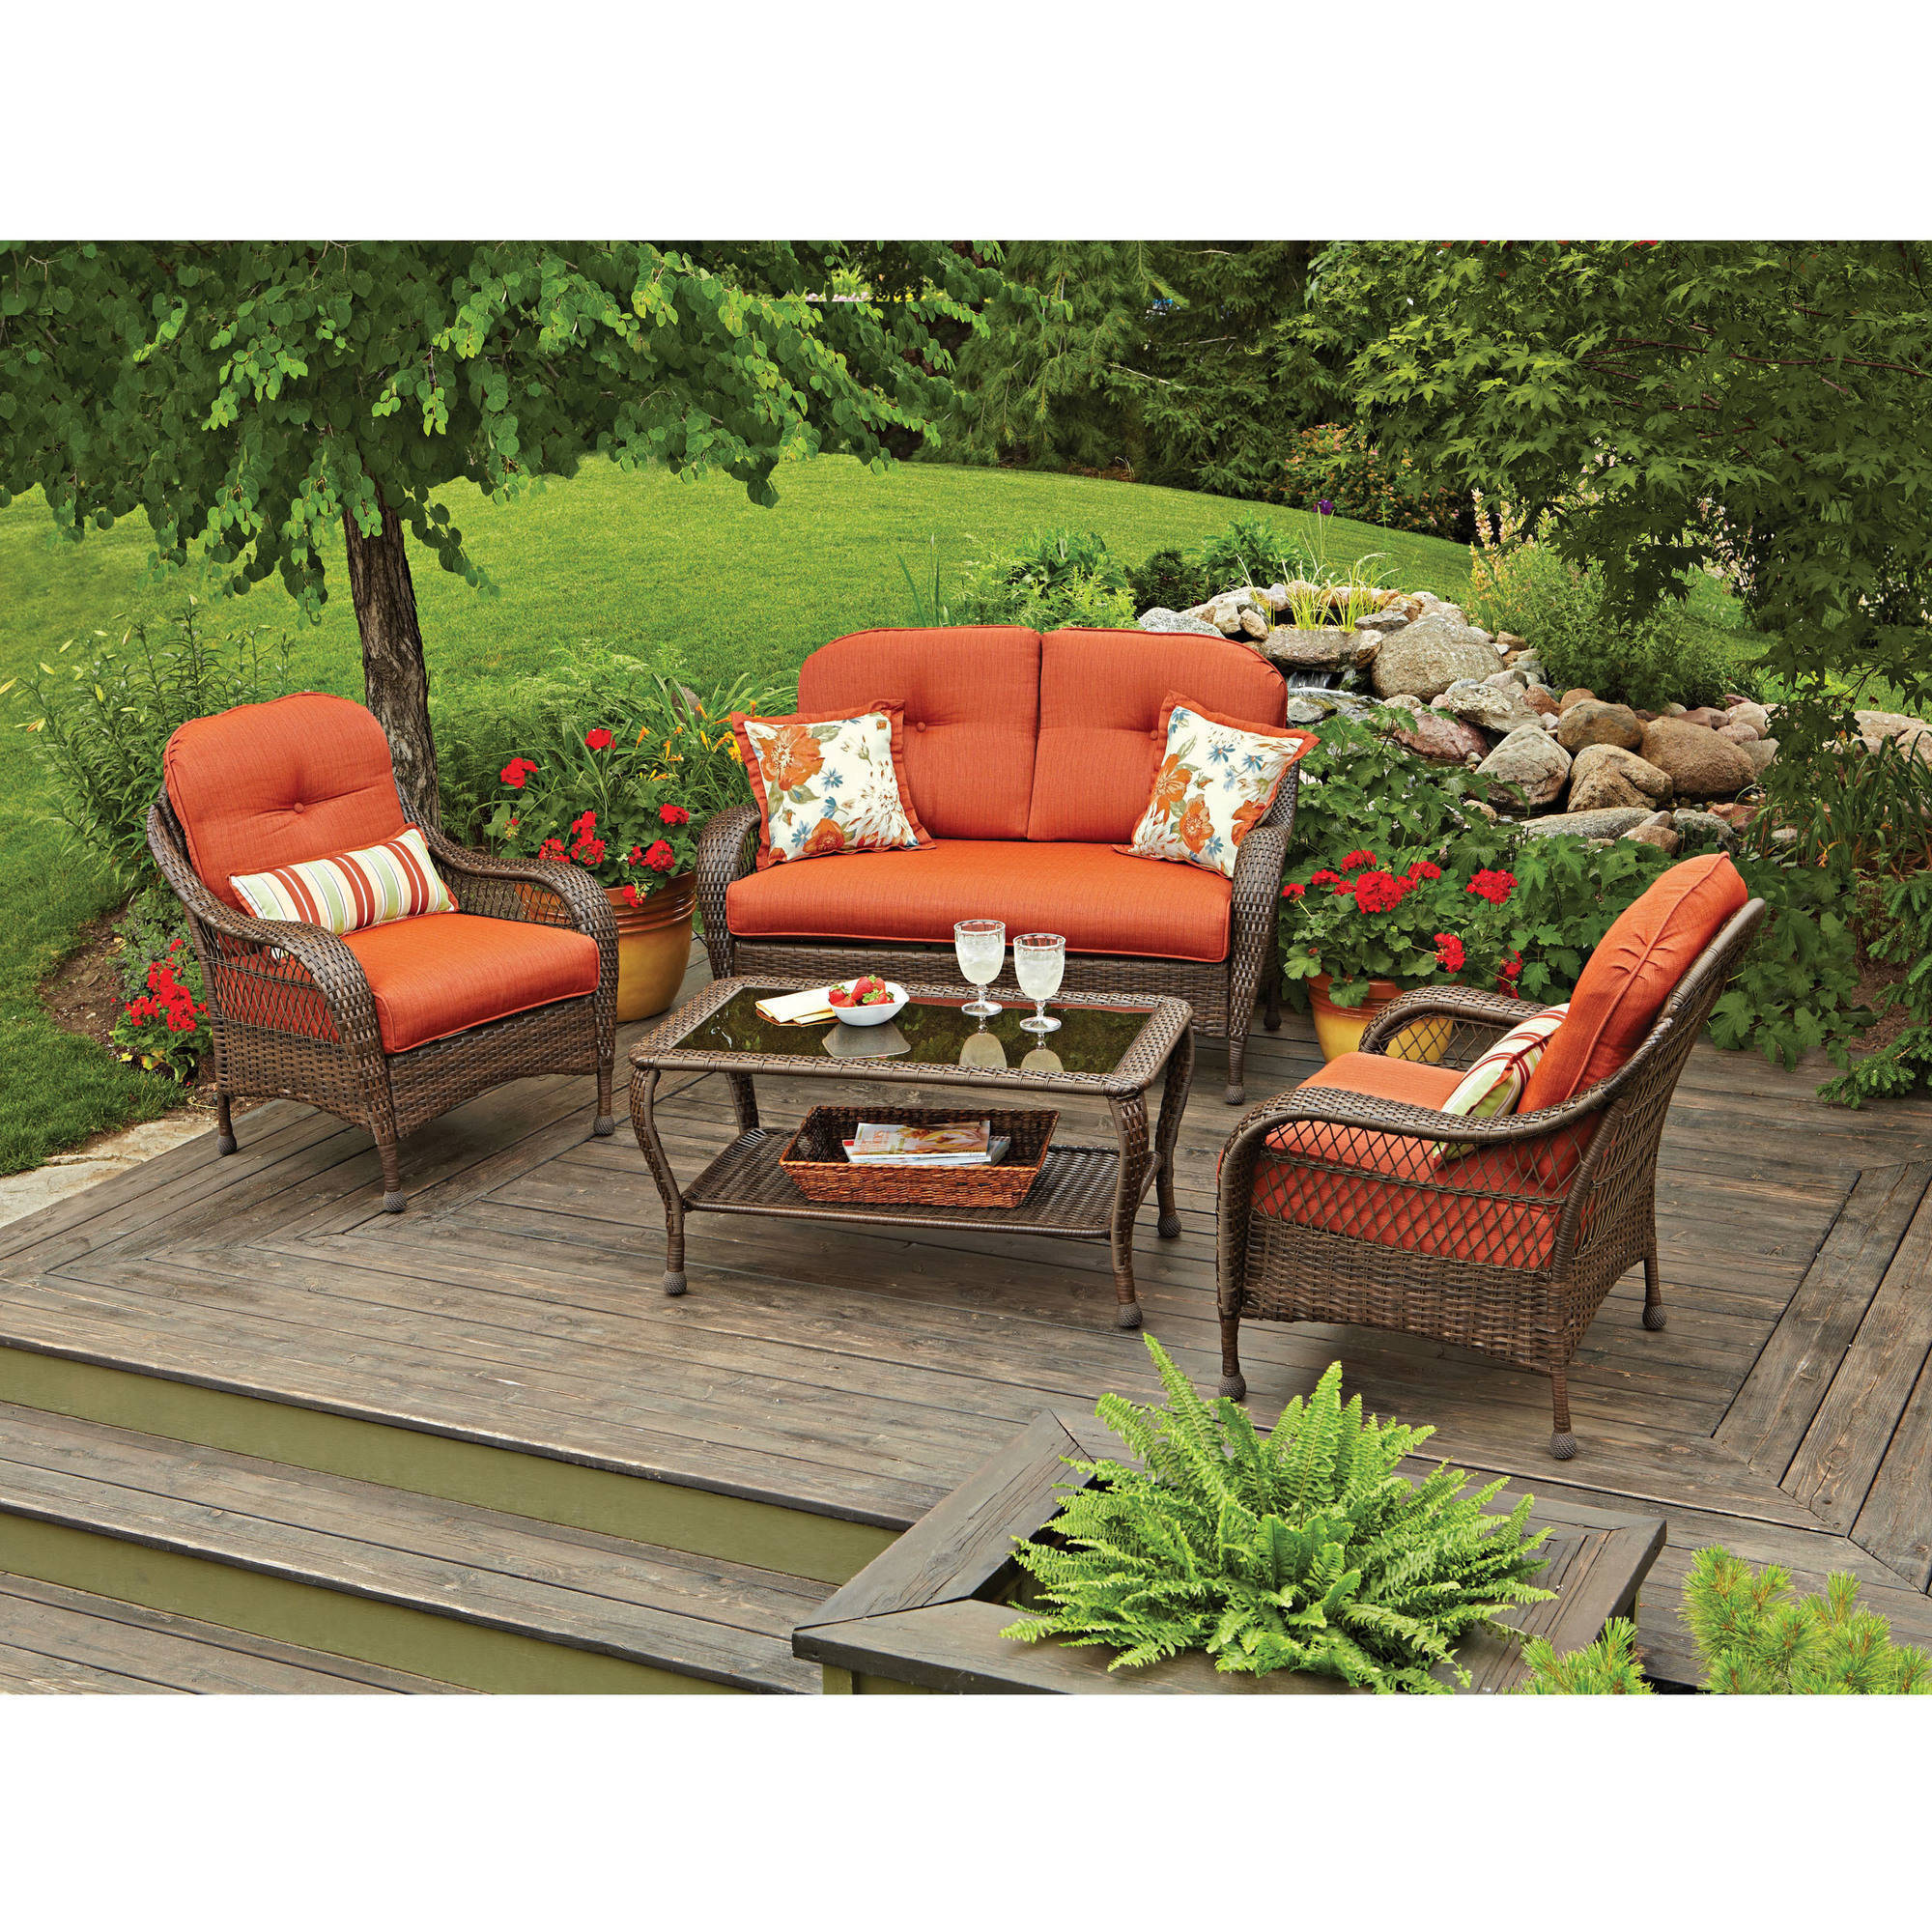 Better Homes And Garden Patio Set